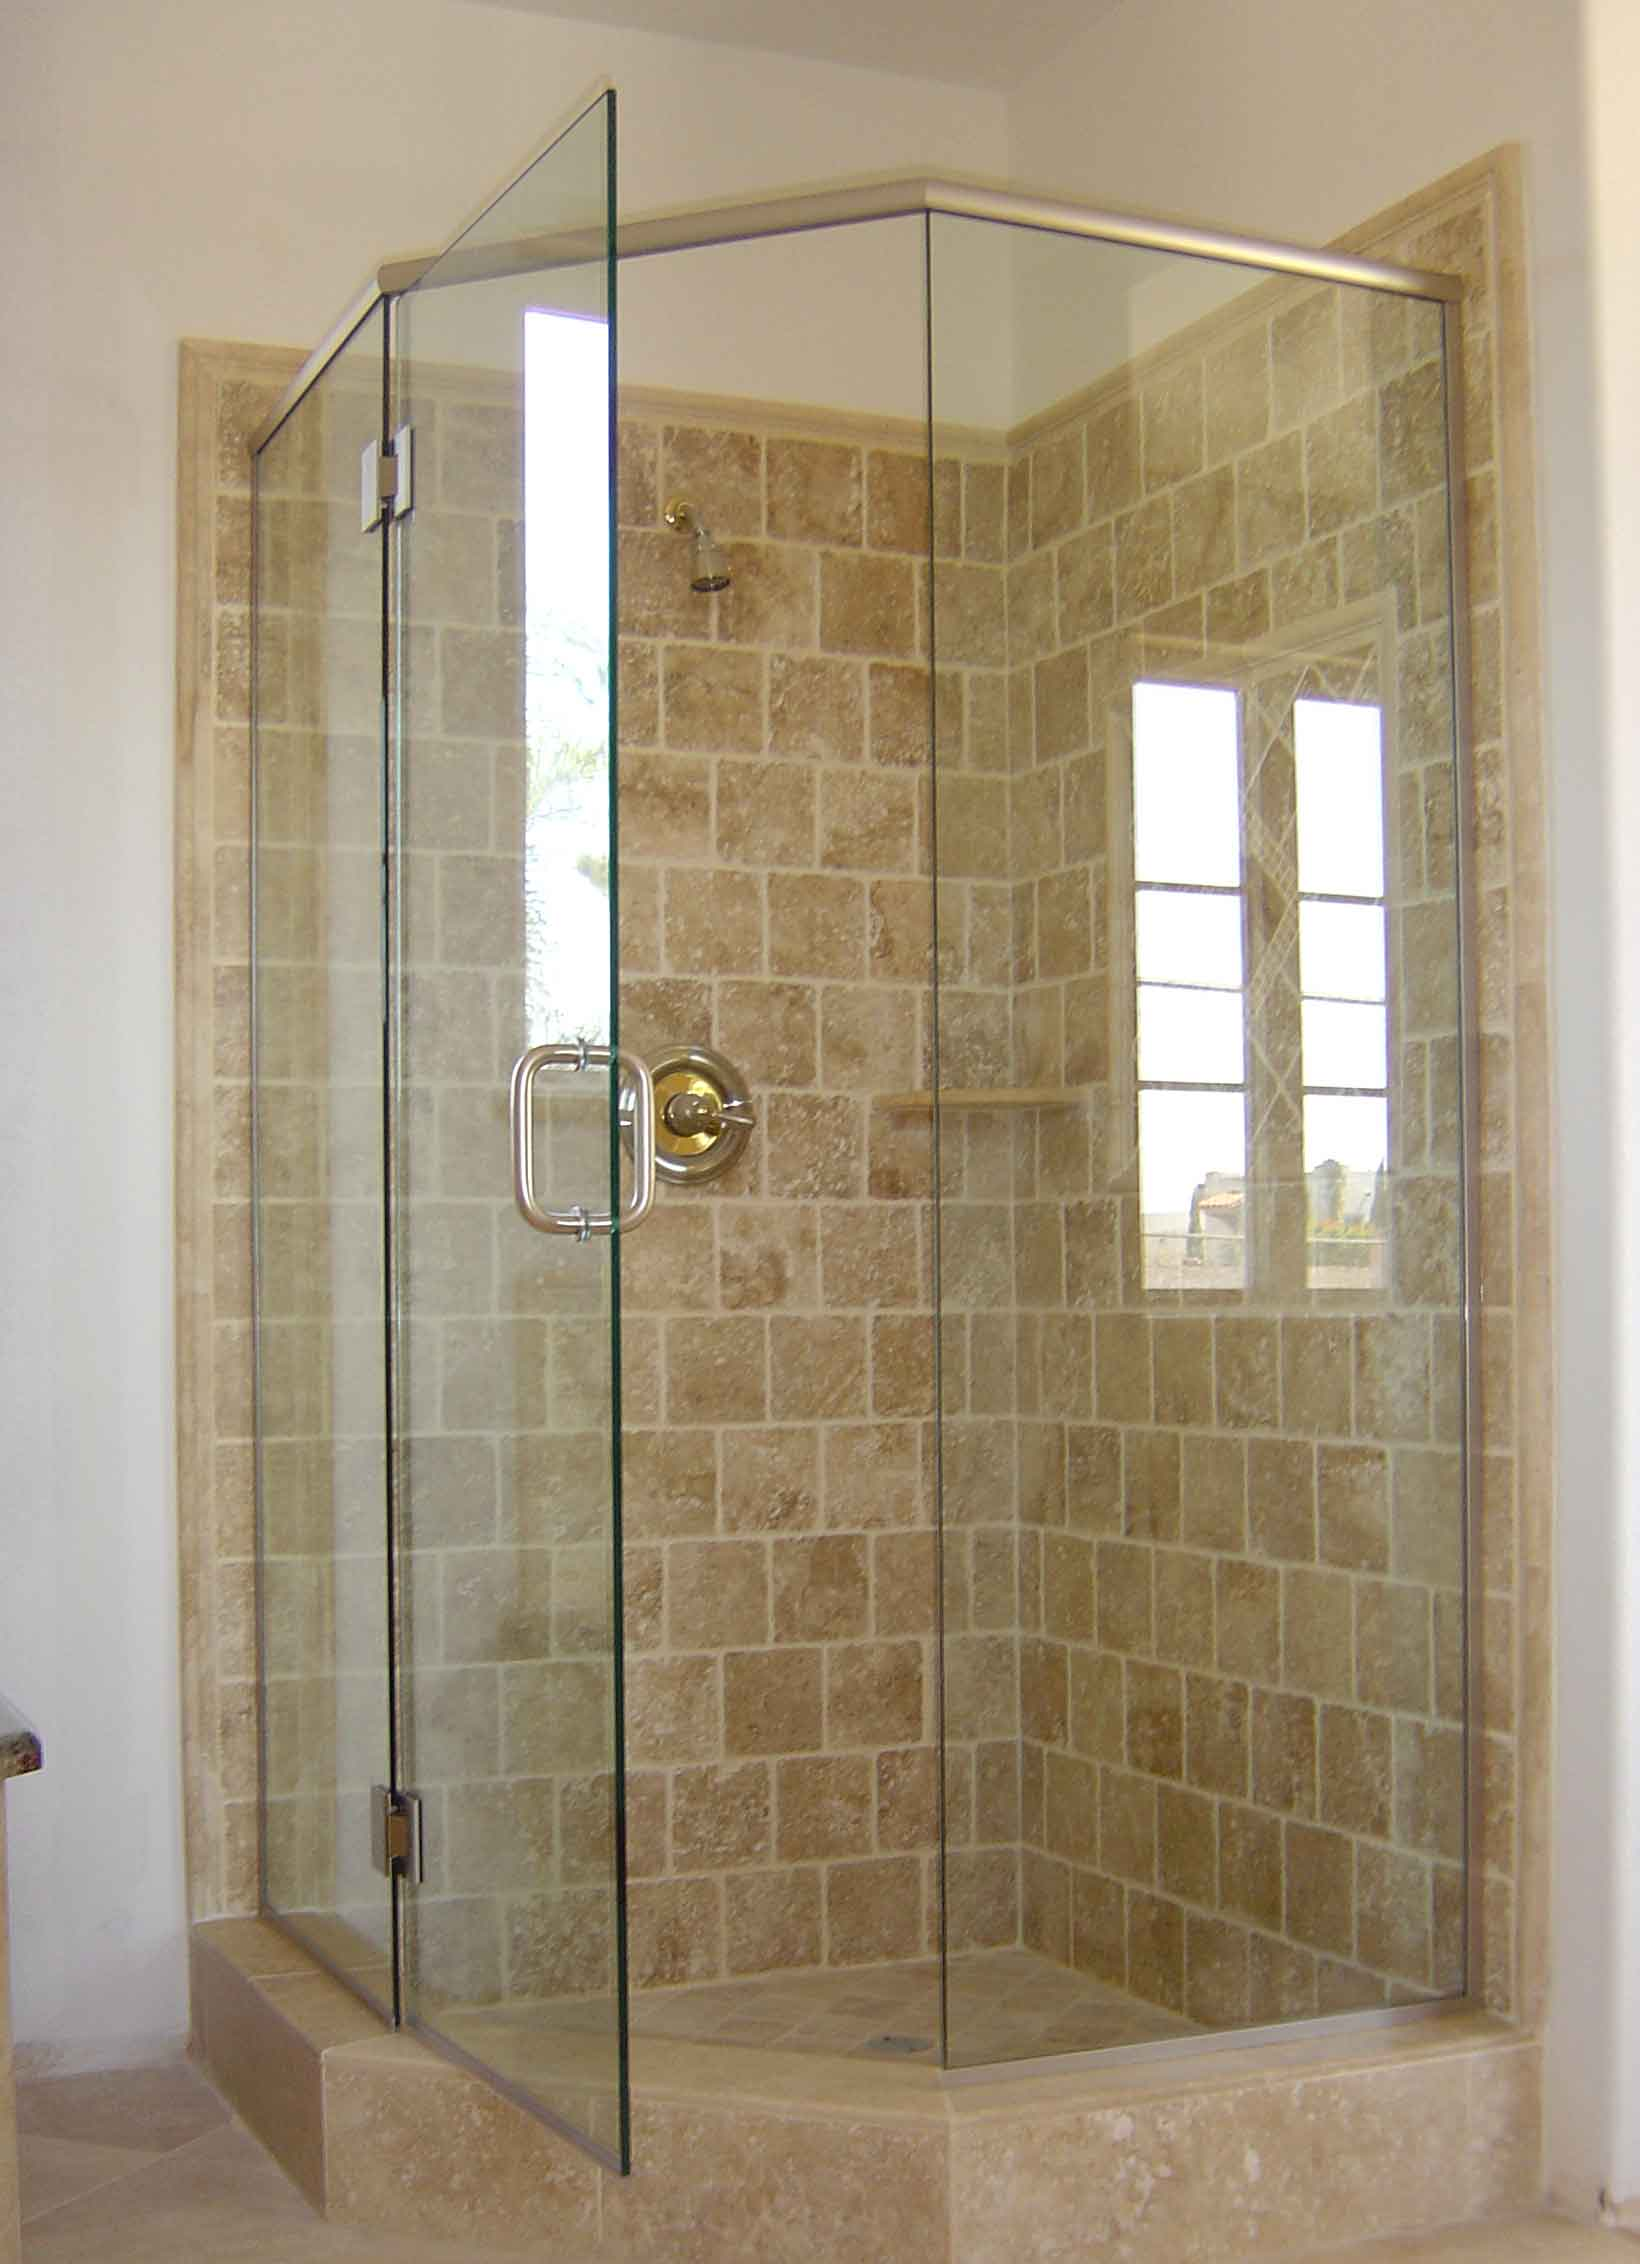 Shower door glass best choice corner shower shower enclosure thre sided planetlyrics Image collections